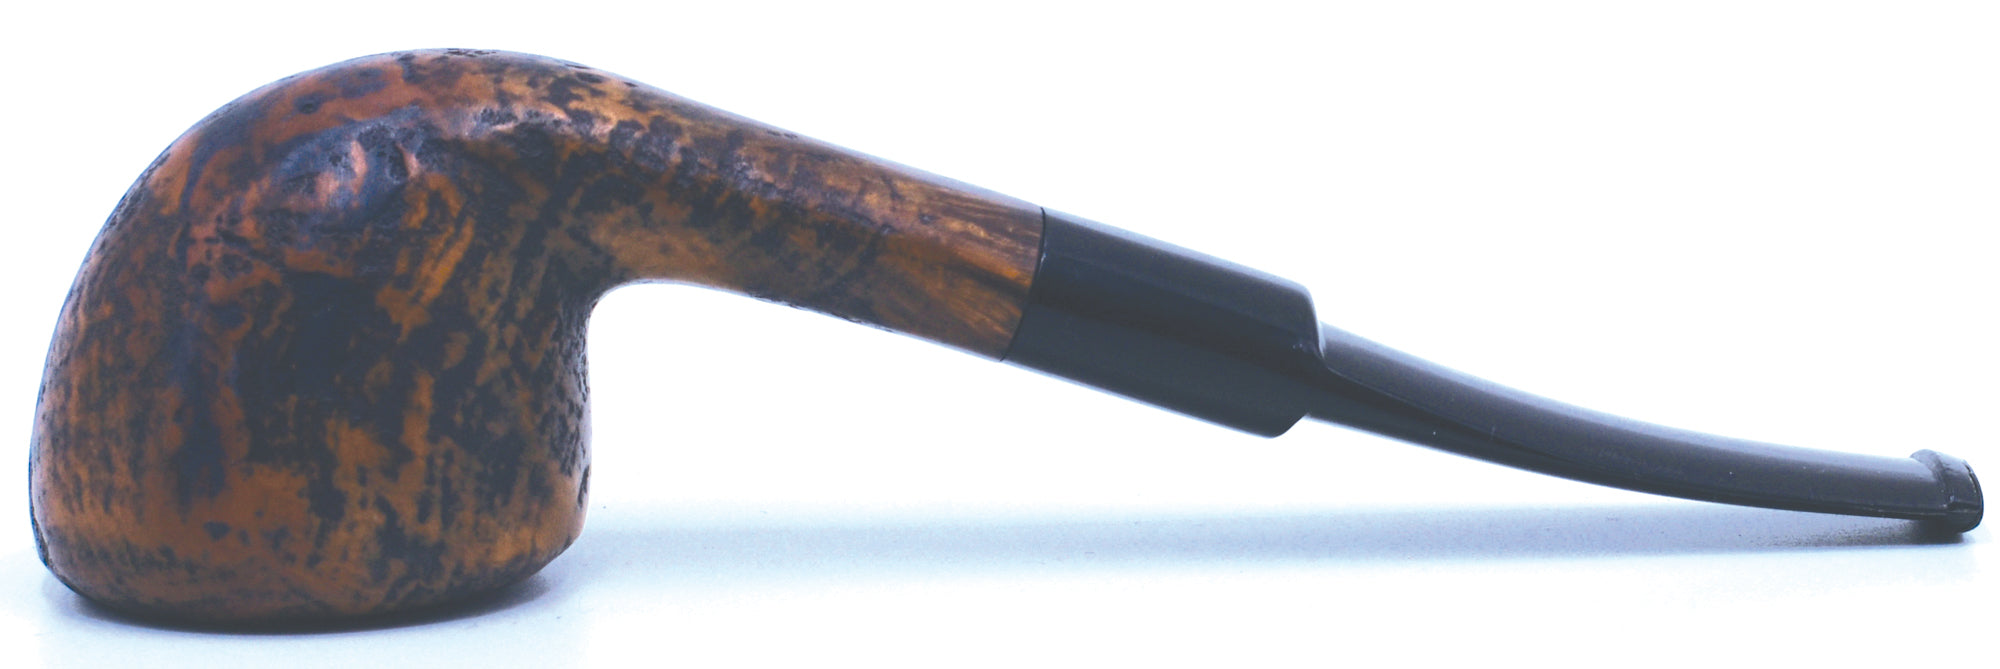 LEGENDEX® VERDI* Non-Filtered Briar Smoking Pipe Made In Italy 01-08-922